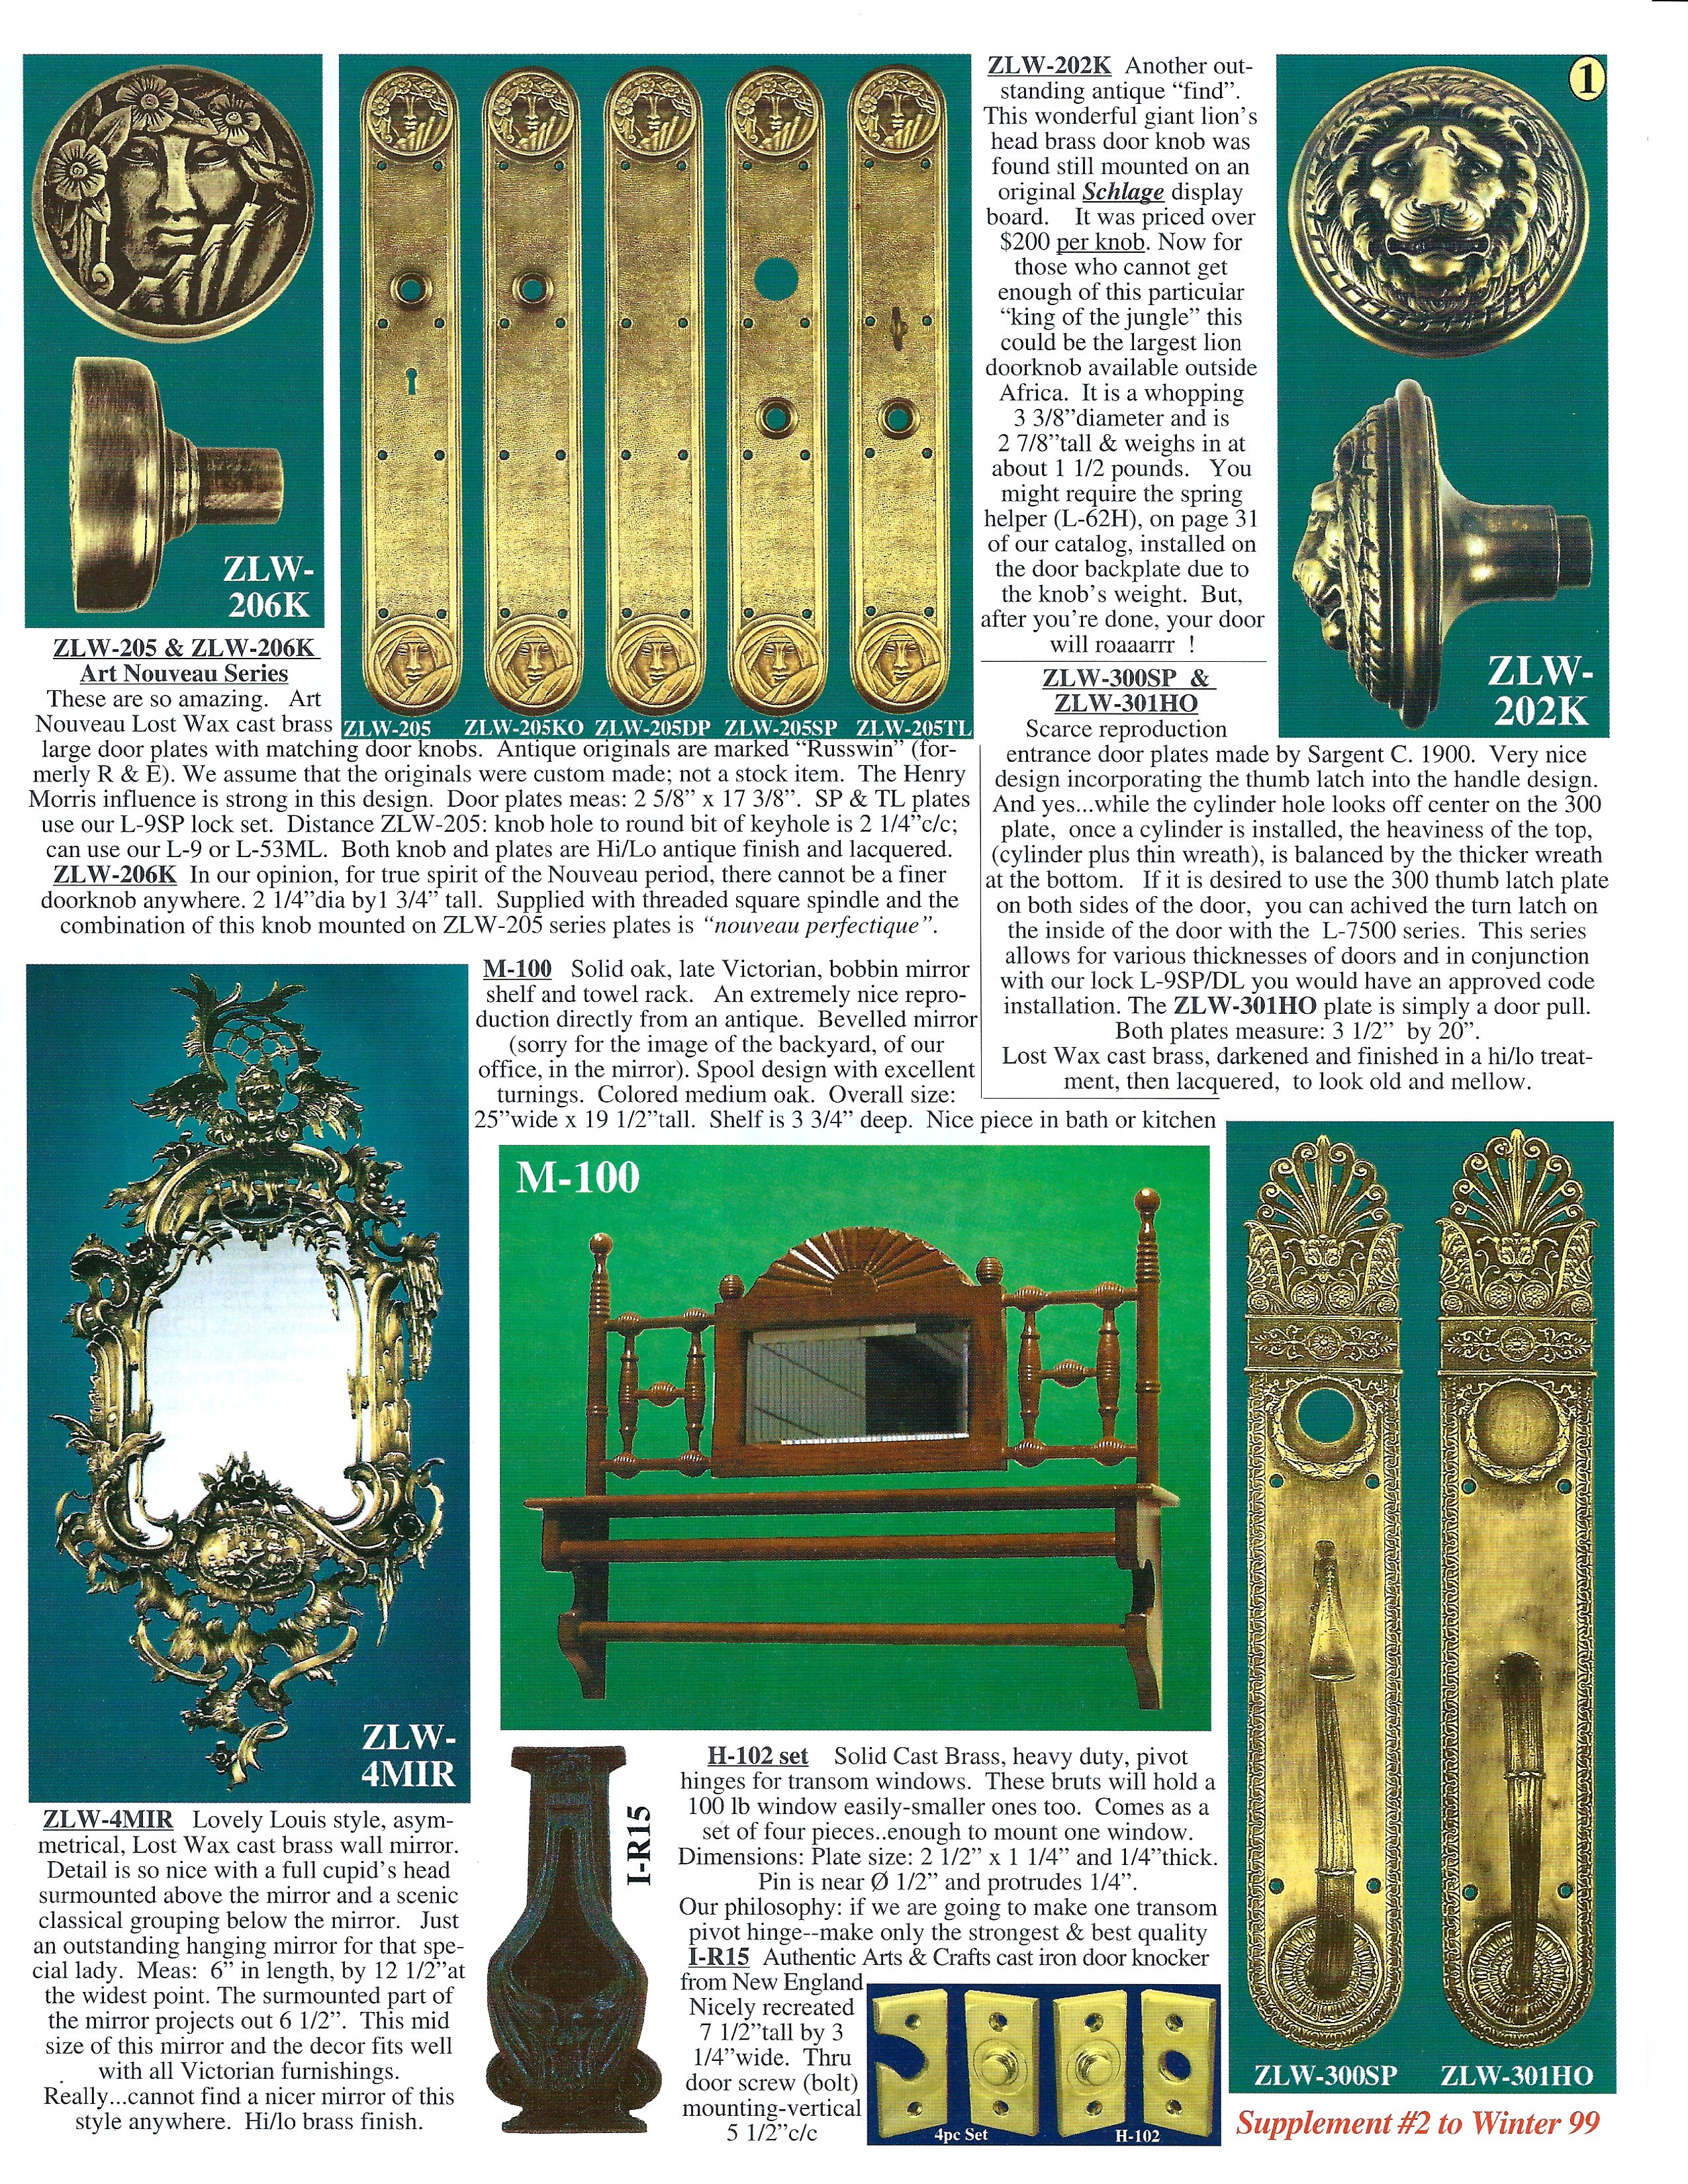 Catalog page 45